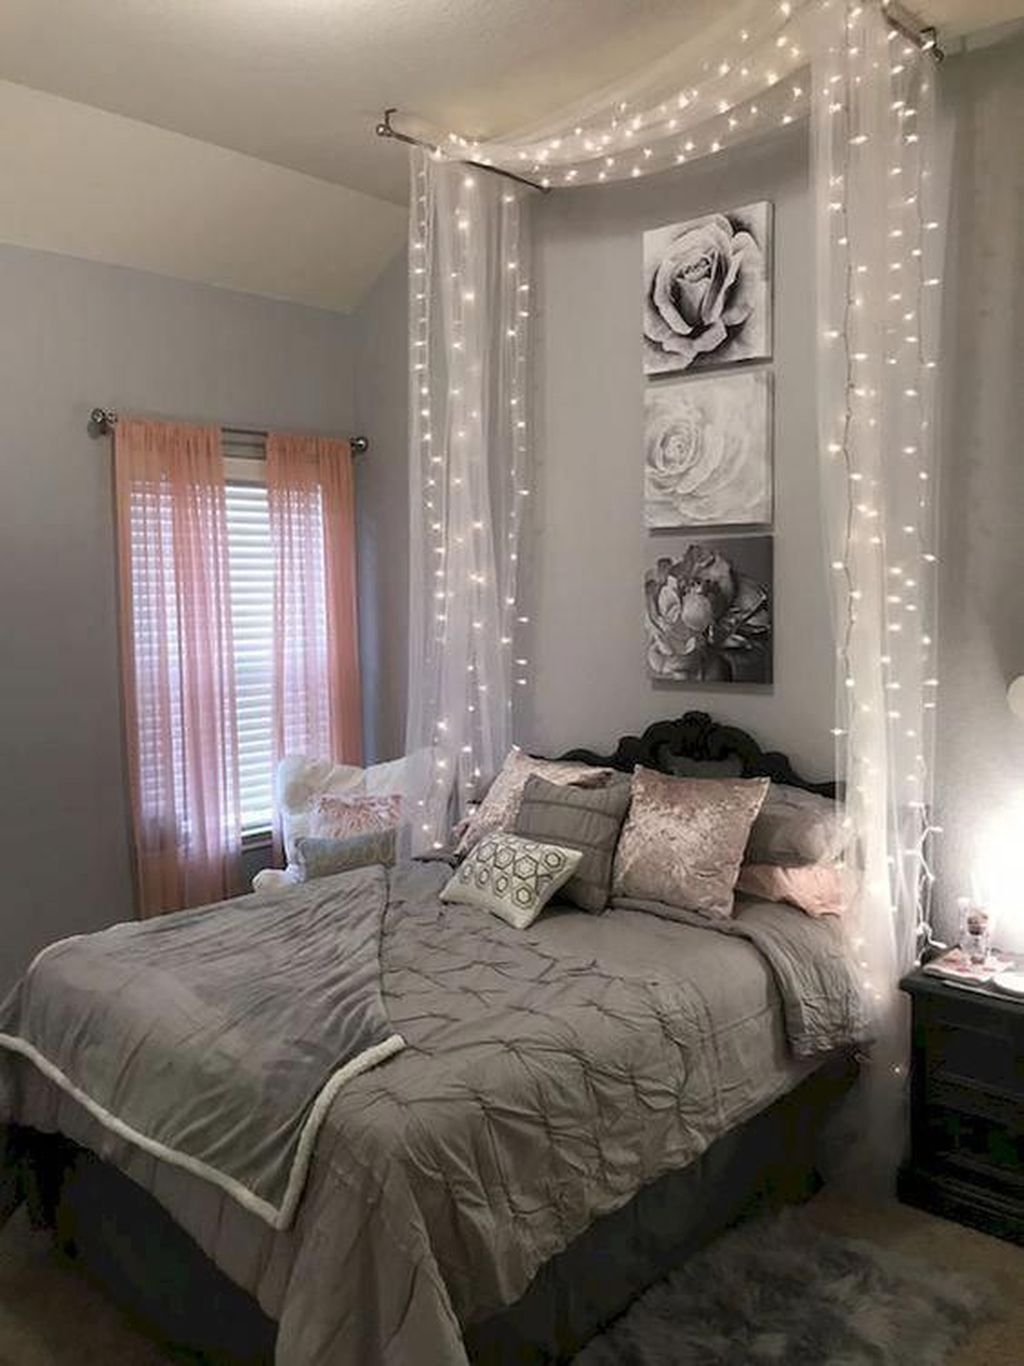 Best Teenager Bedroom Ideas With Awesome Decor 14